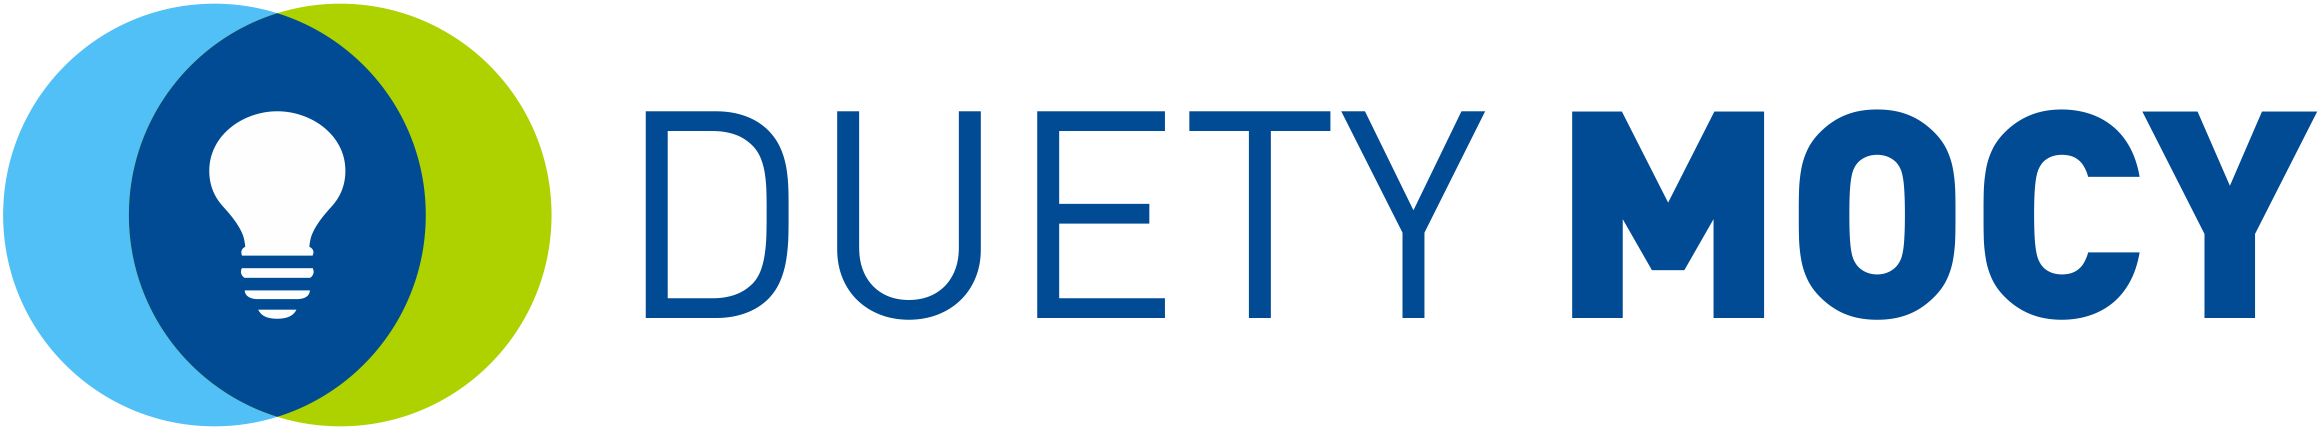 duety-mocy_logo.png